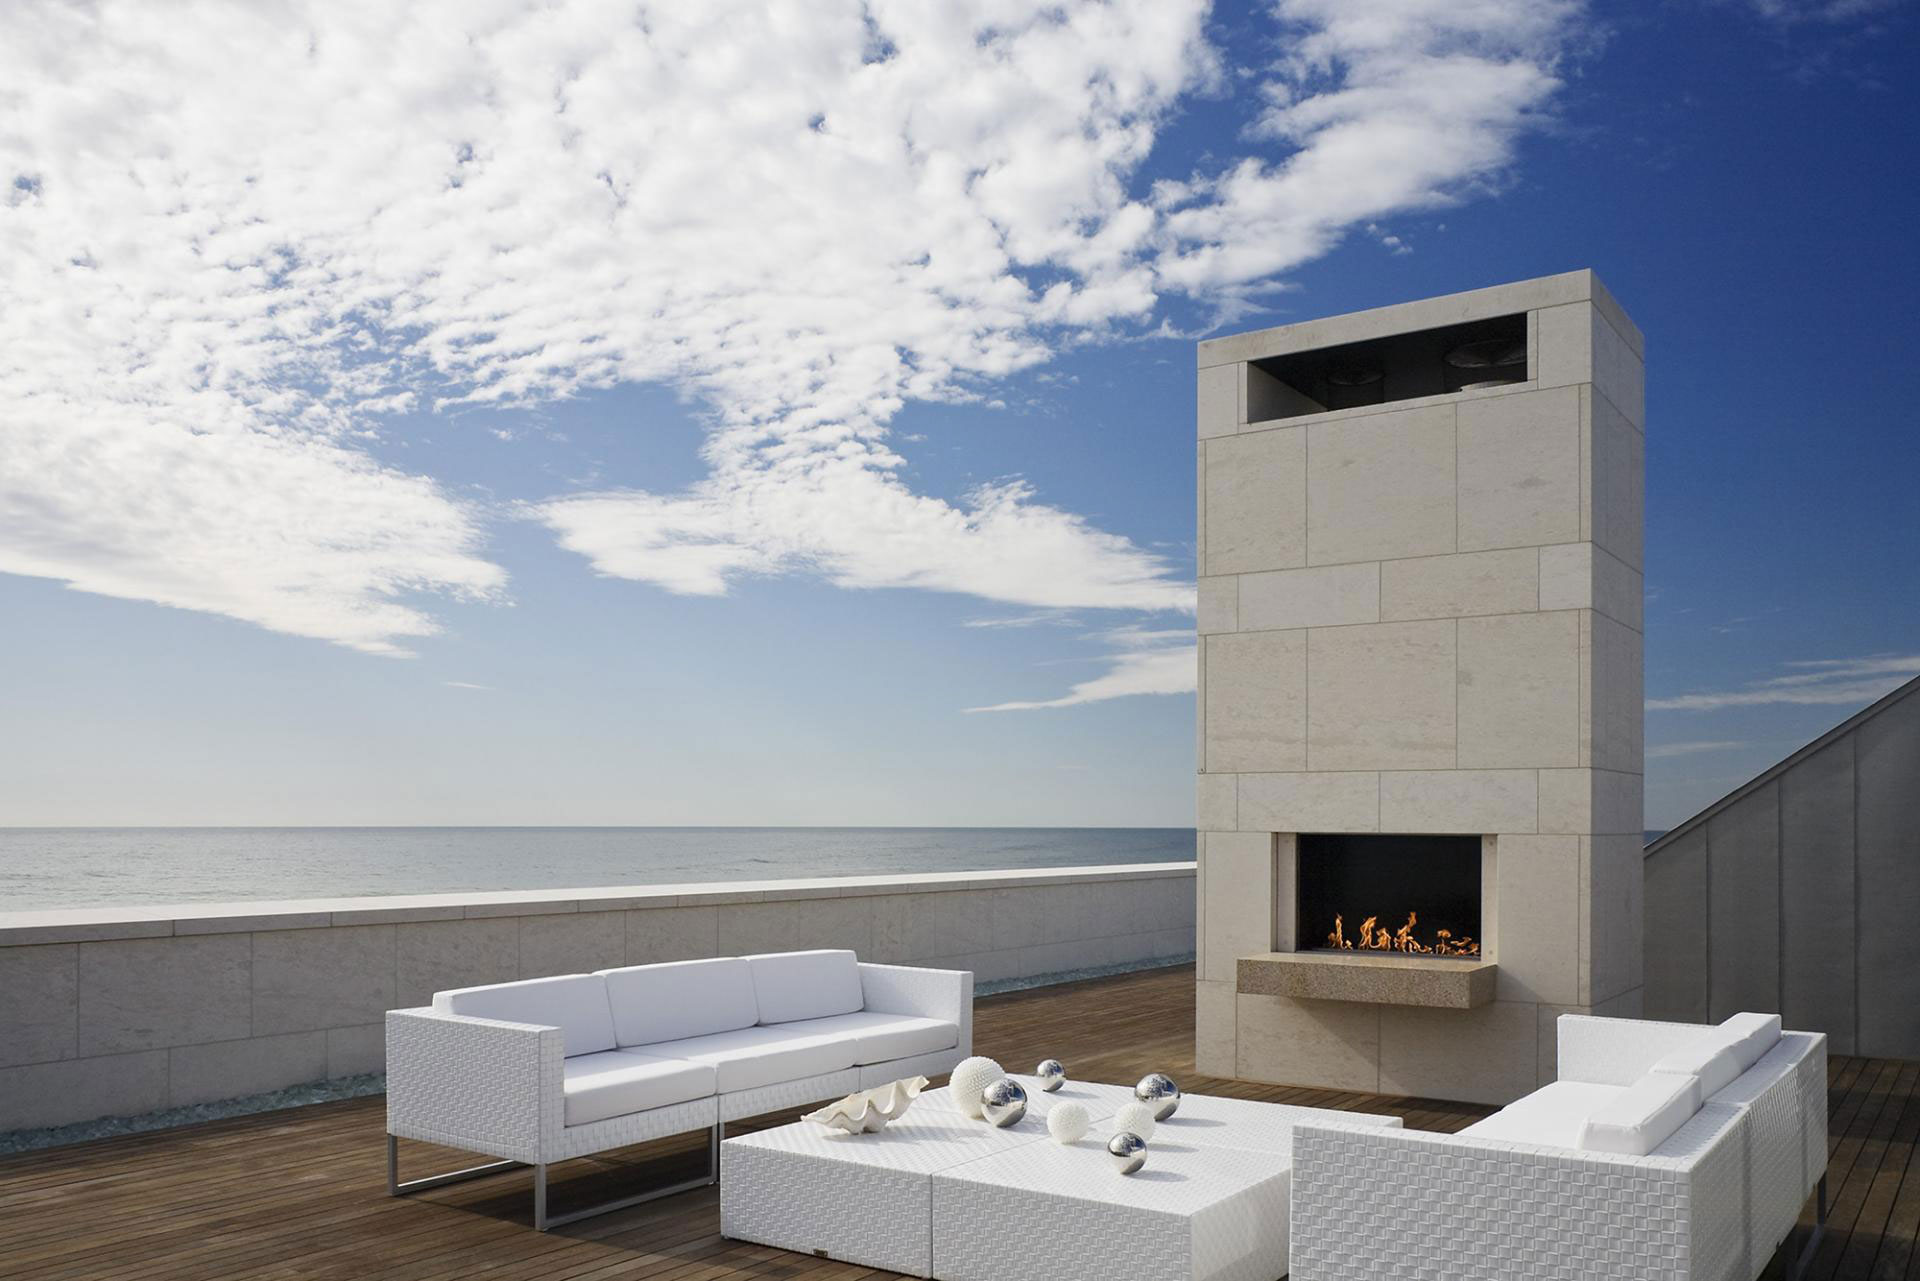 Roof Terrace Outdoor Fireplace Furniture Summer Retreat